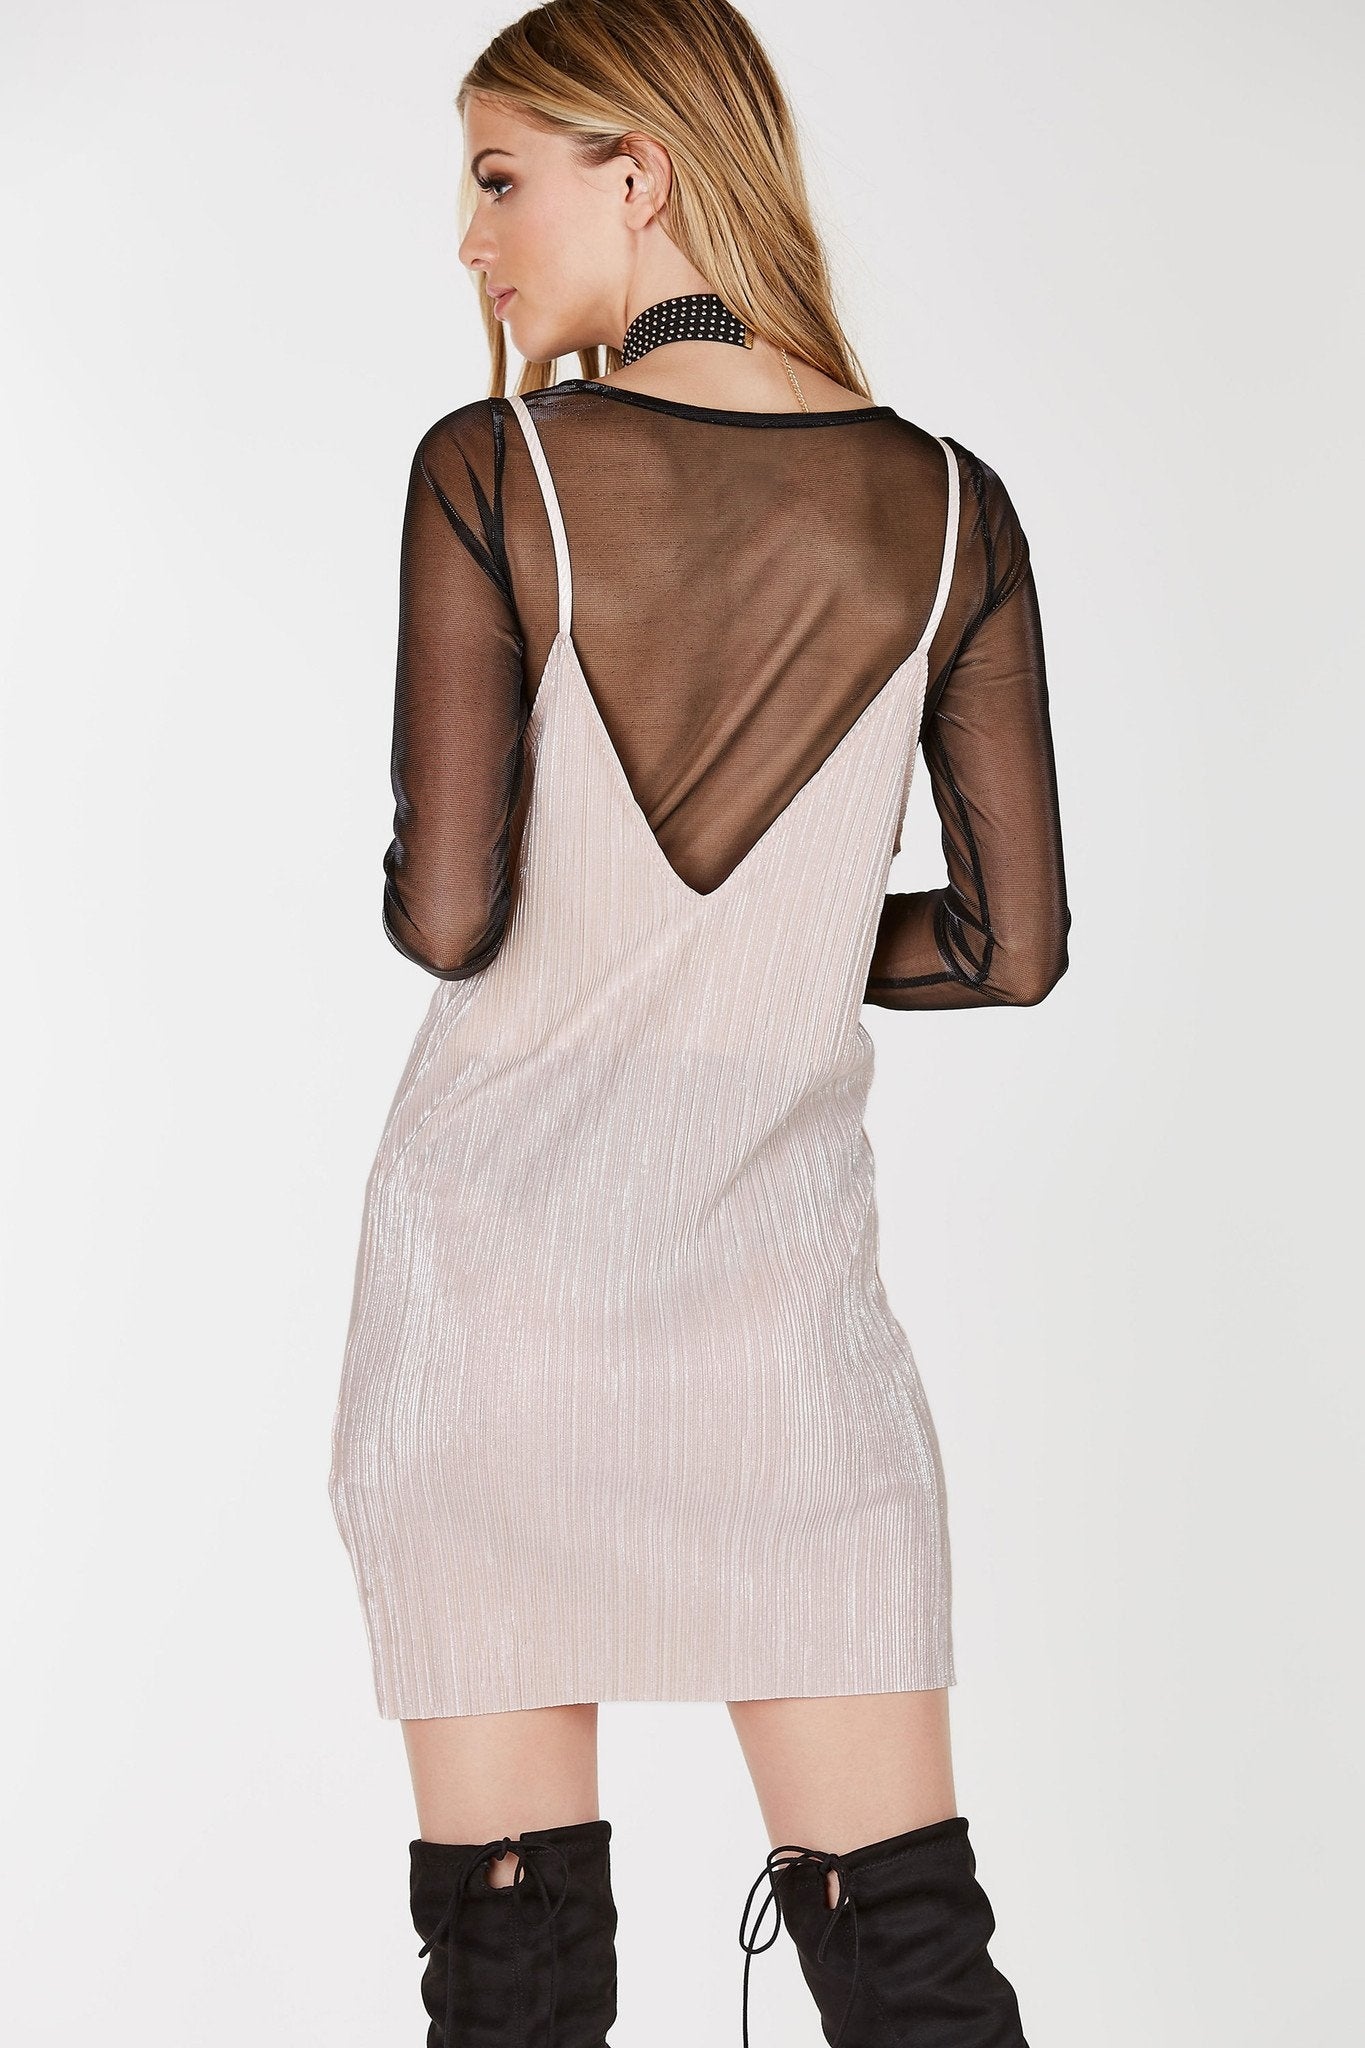 Pleated straight hem with deep V-neckline. Thin shoulder straps with full lining. Foiled finish with hints of silver.